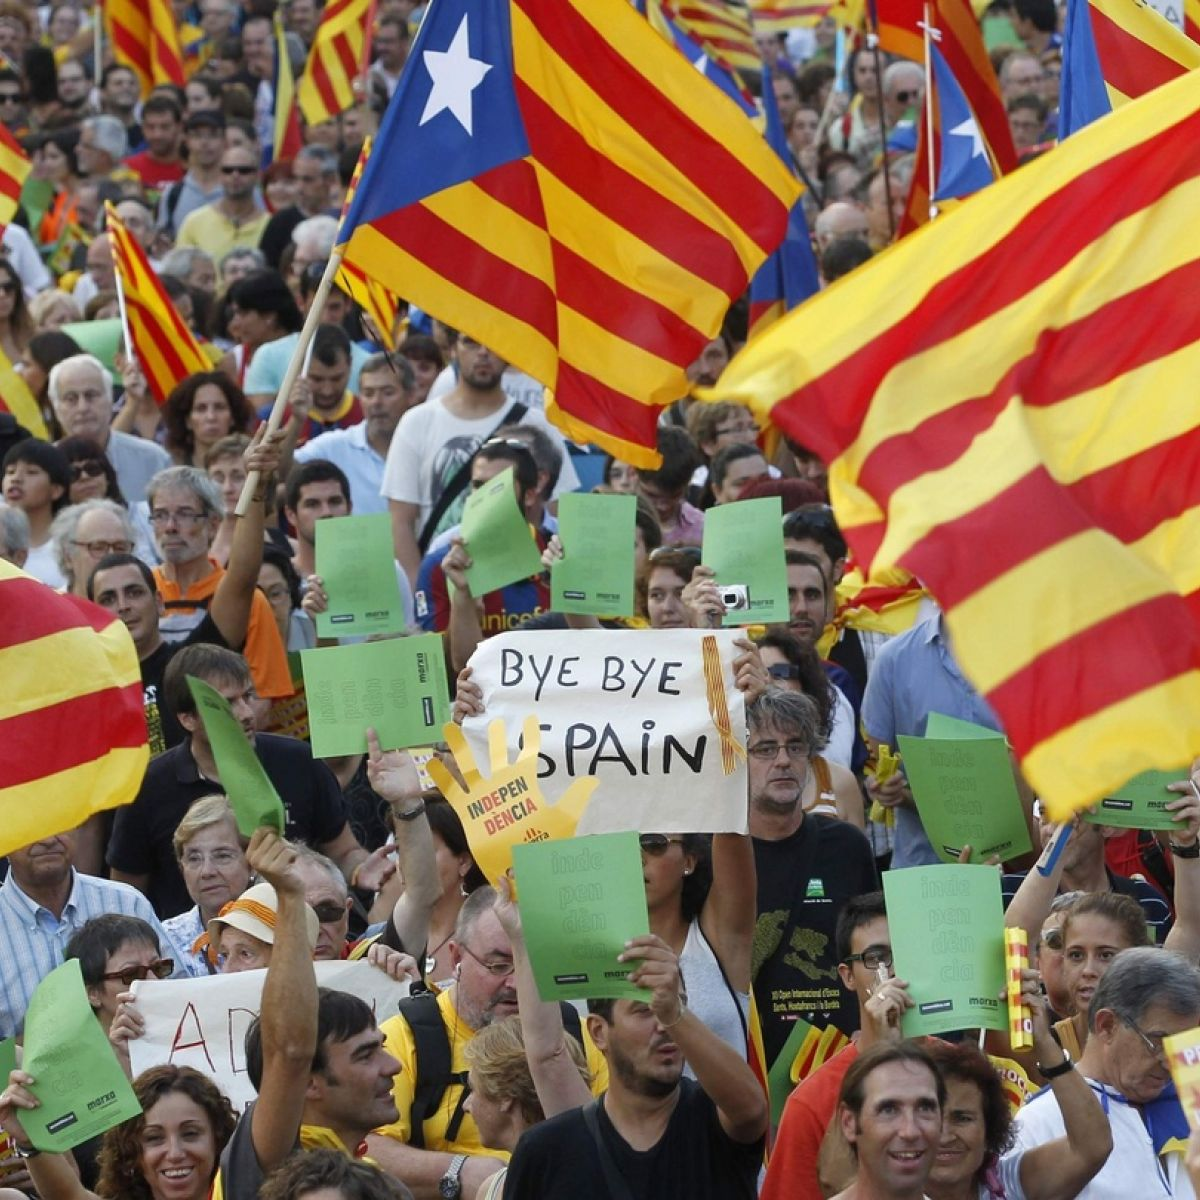 The Parliament of Catalonia has allowed the process of separation from Spain to begin